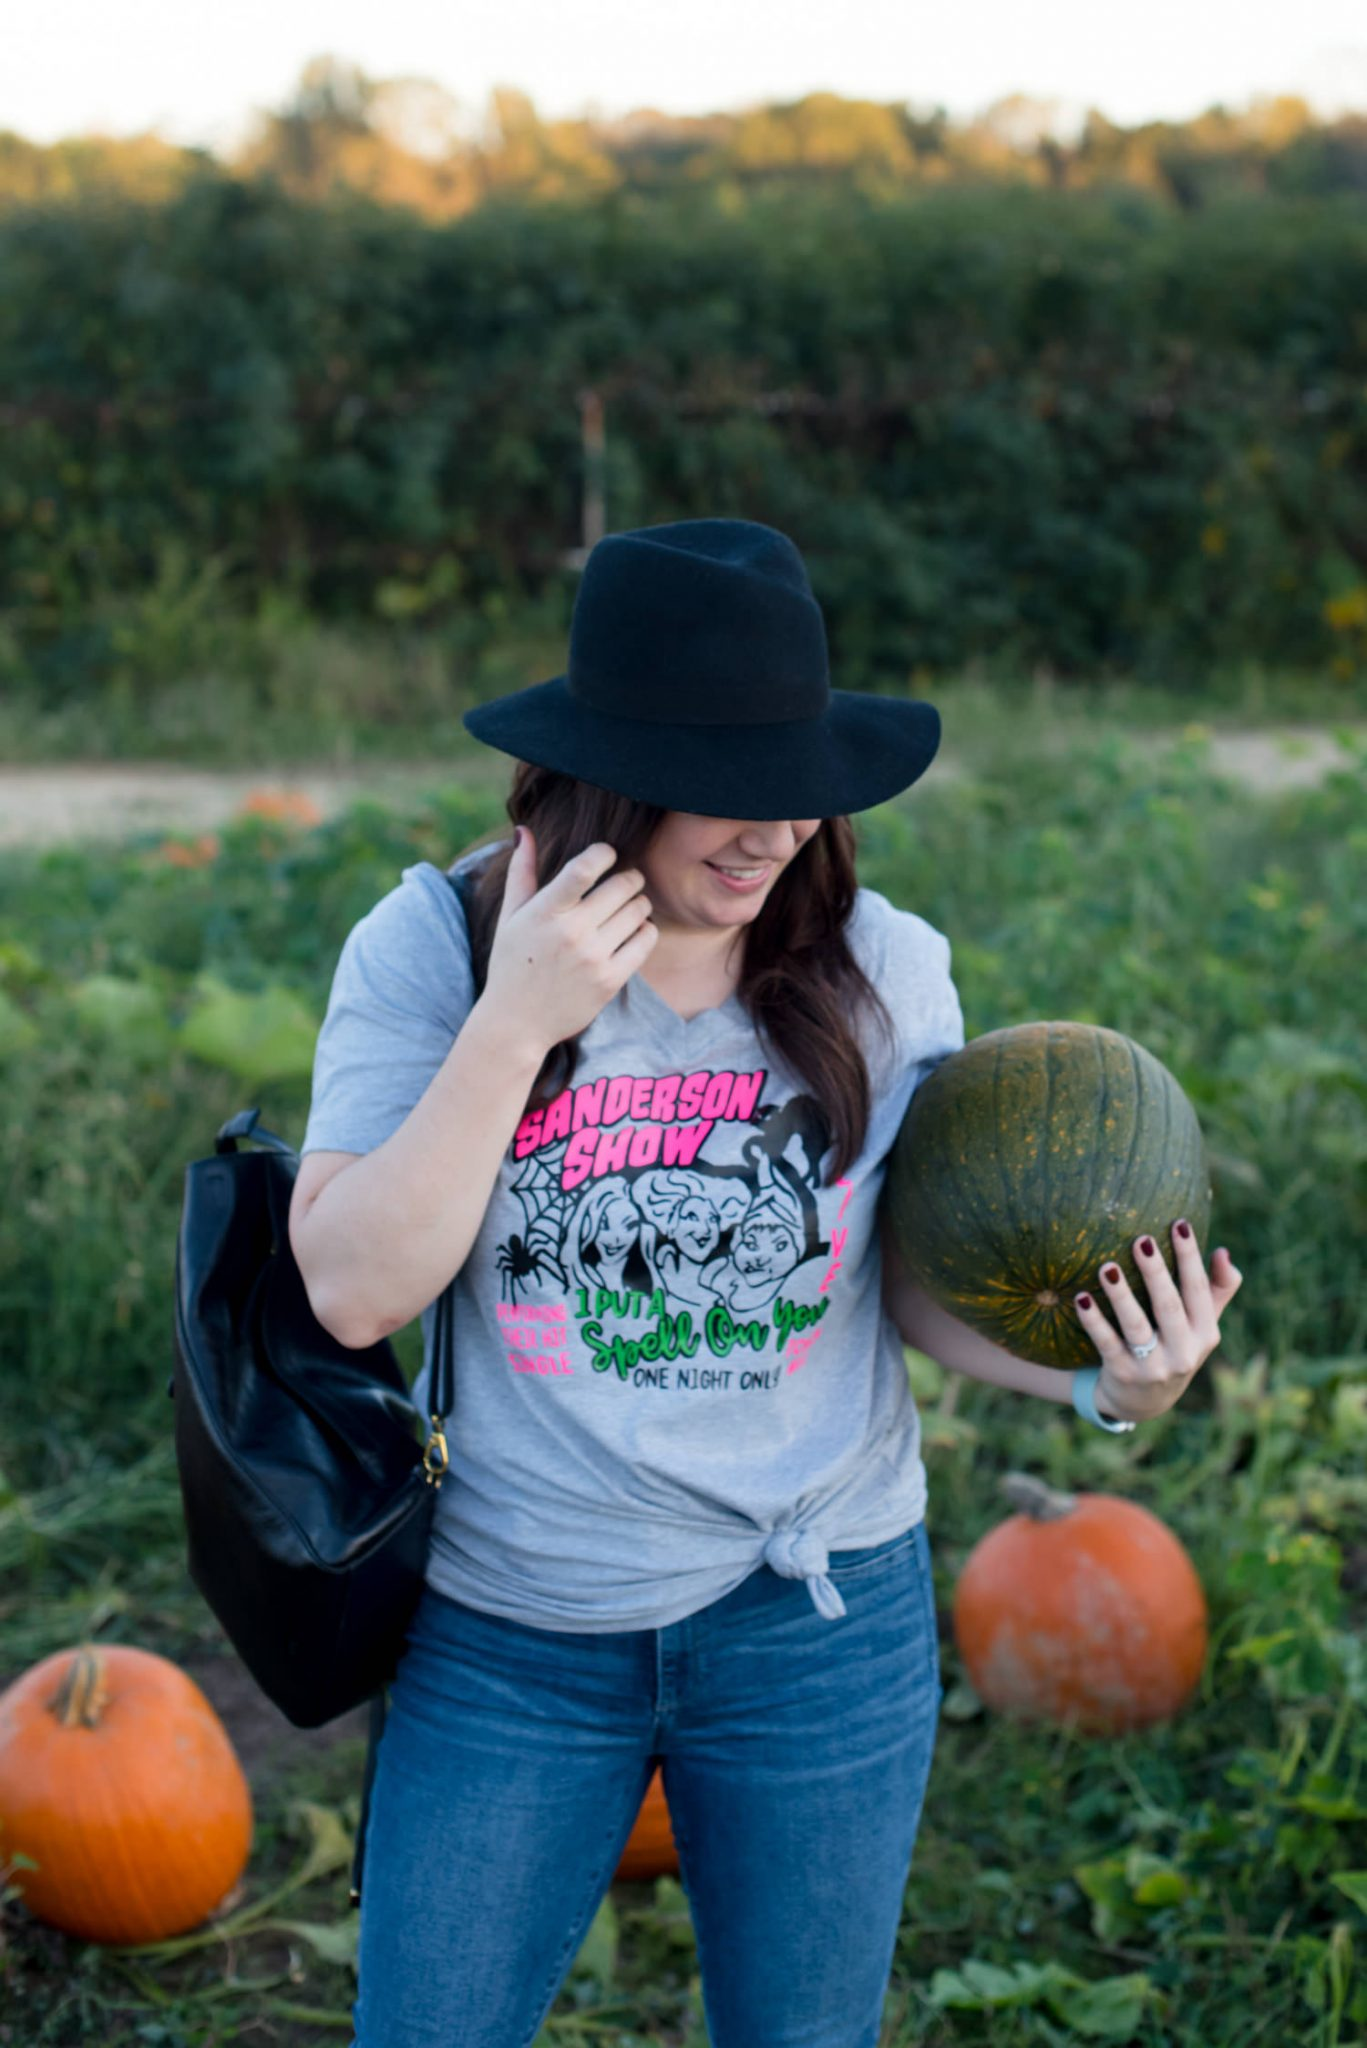 #halloween #hocuspocus   15 Hocus Pocus Shirts to Wear This Halloween featured by top Atlanta fashion blog Miss Molly Moon